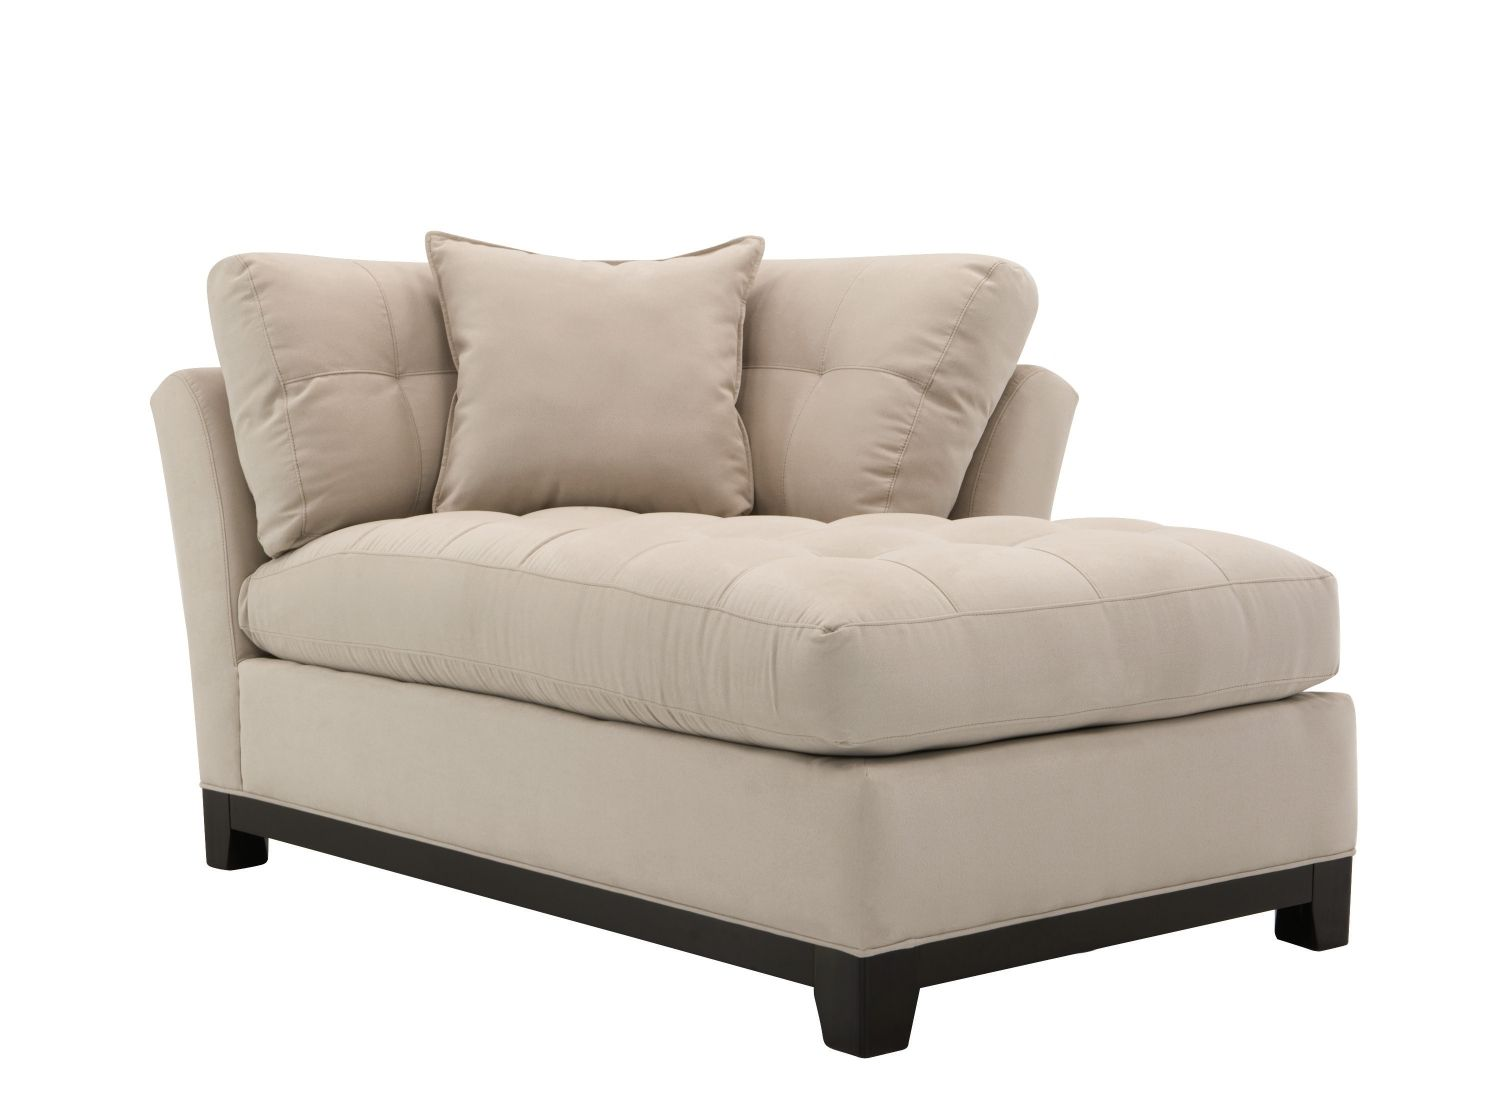 Cindy Crawford Metropolis Microfiber Chaise Lounge | Beauty and comfort are the signatures of this chaise  sc 1 st  Pinterest : microfiber chaise lounge chair - Sectionals, Sofas & Couches